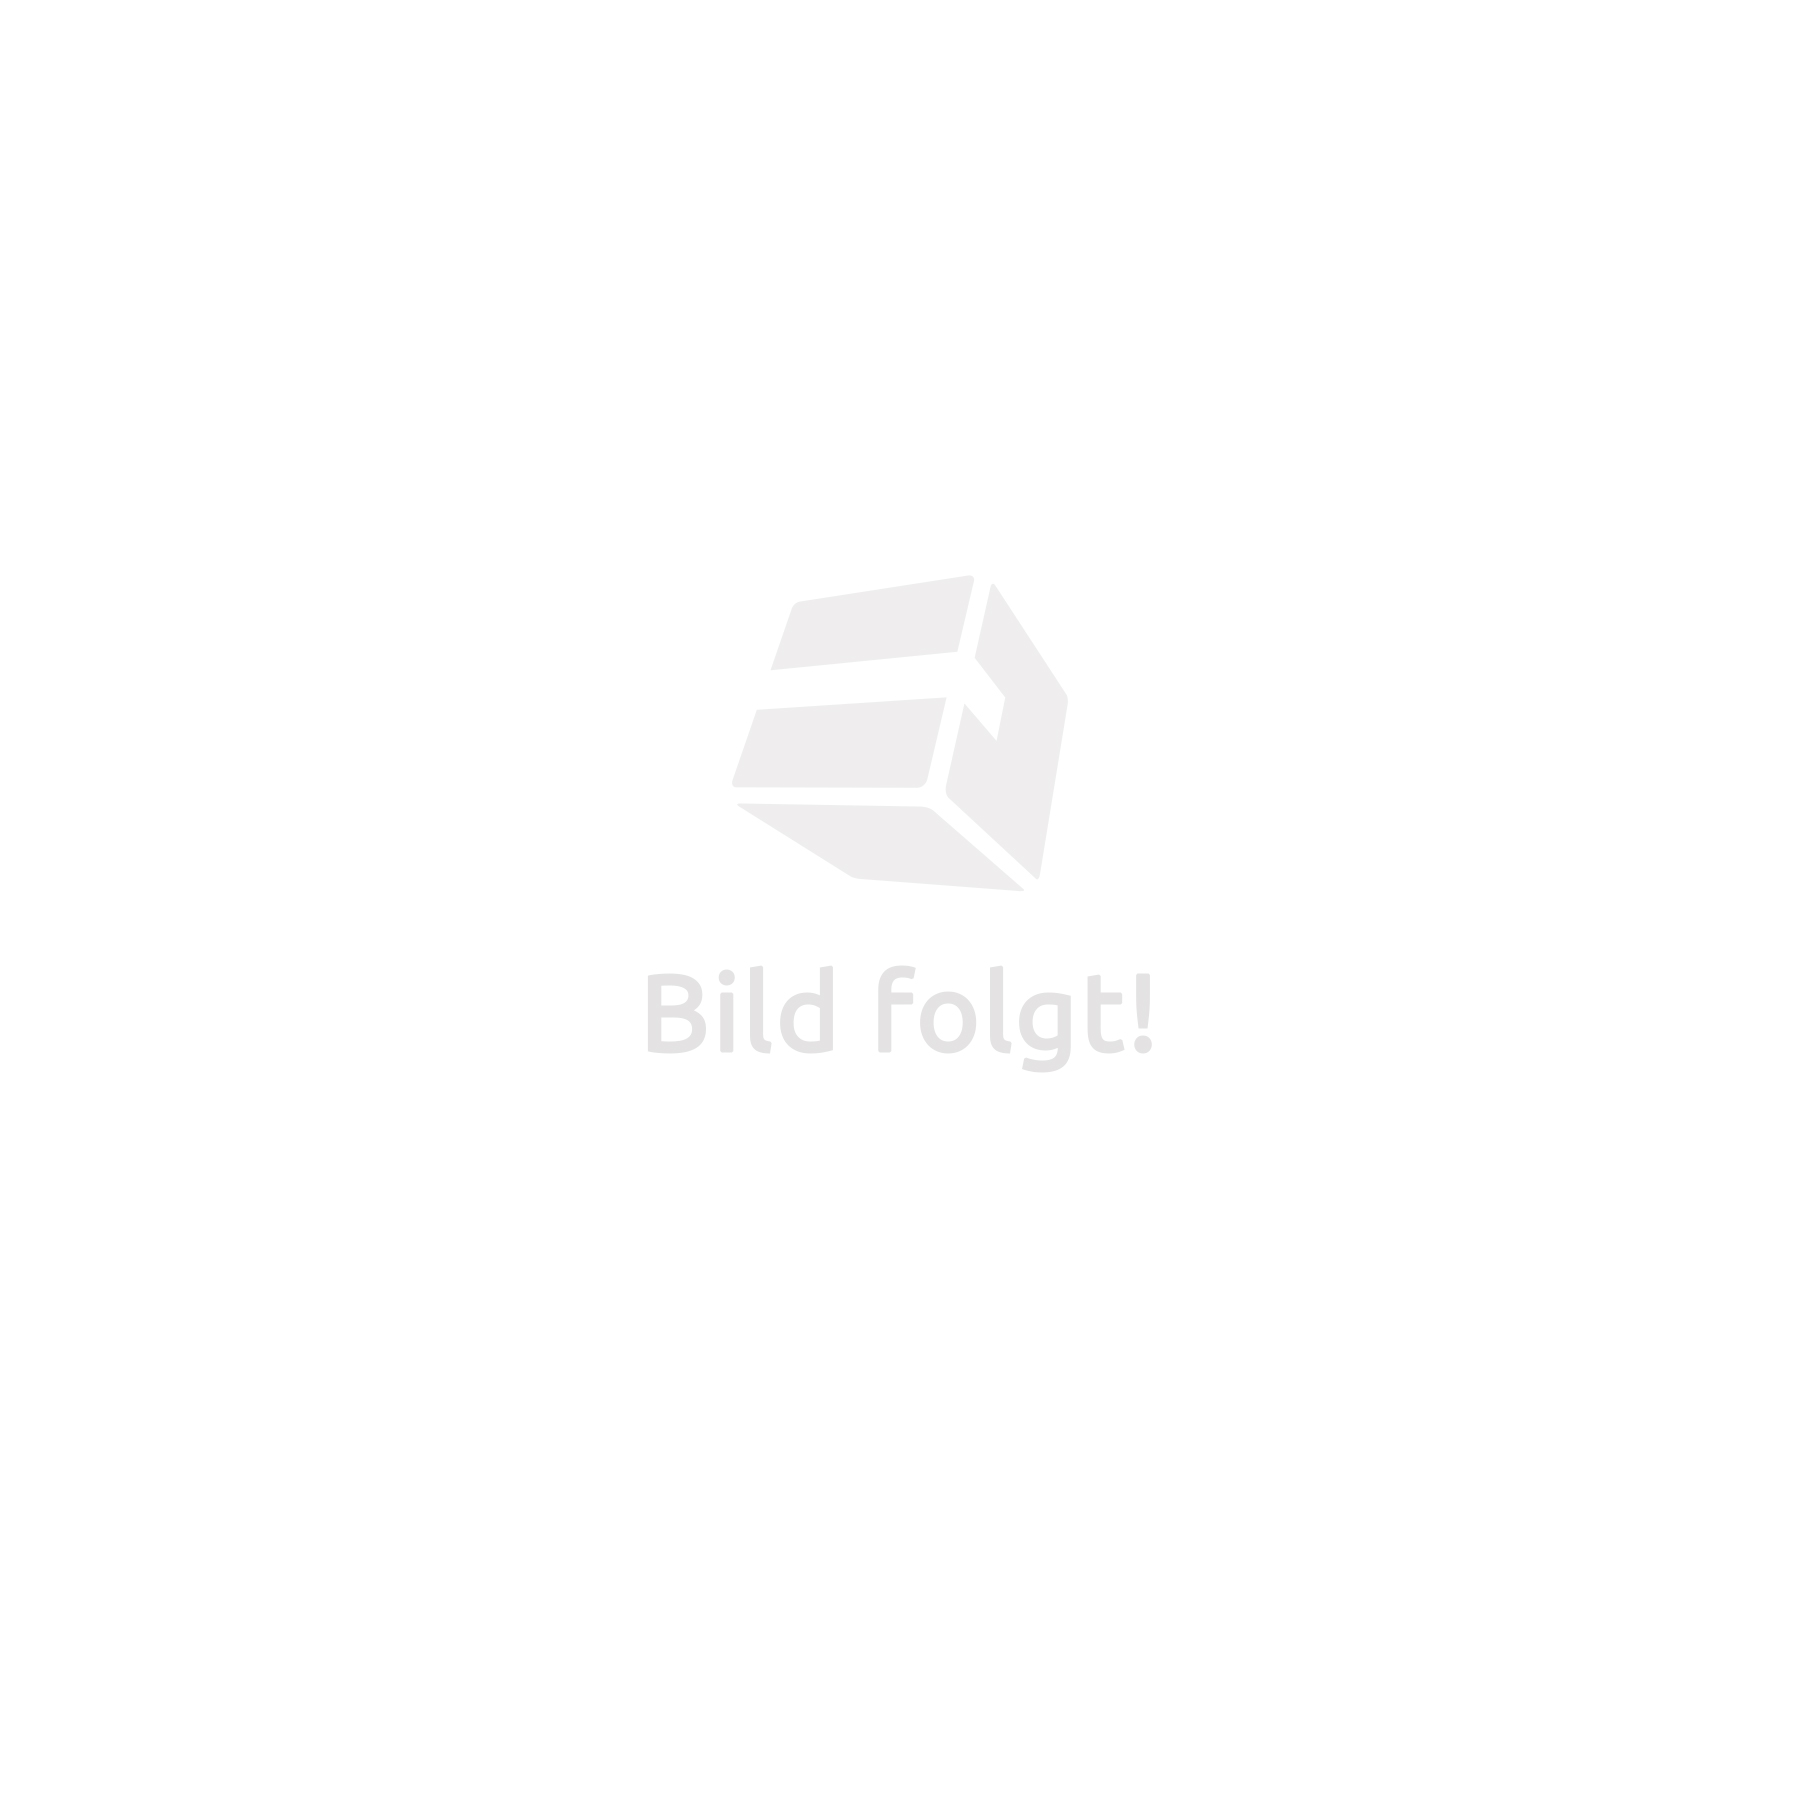 Lot de 6 chaises table salle manger ensemble cuisine for Ensemble table ronde et chaise salle a manger